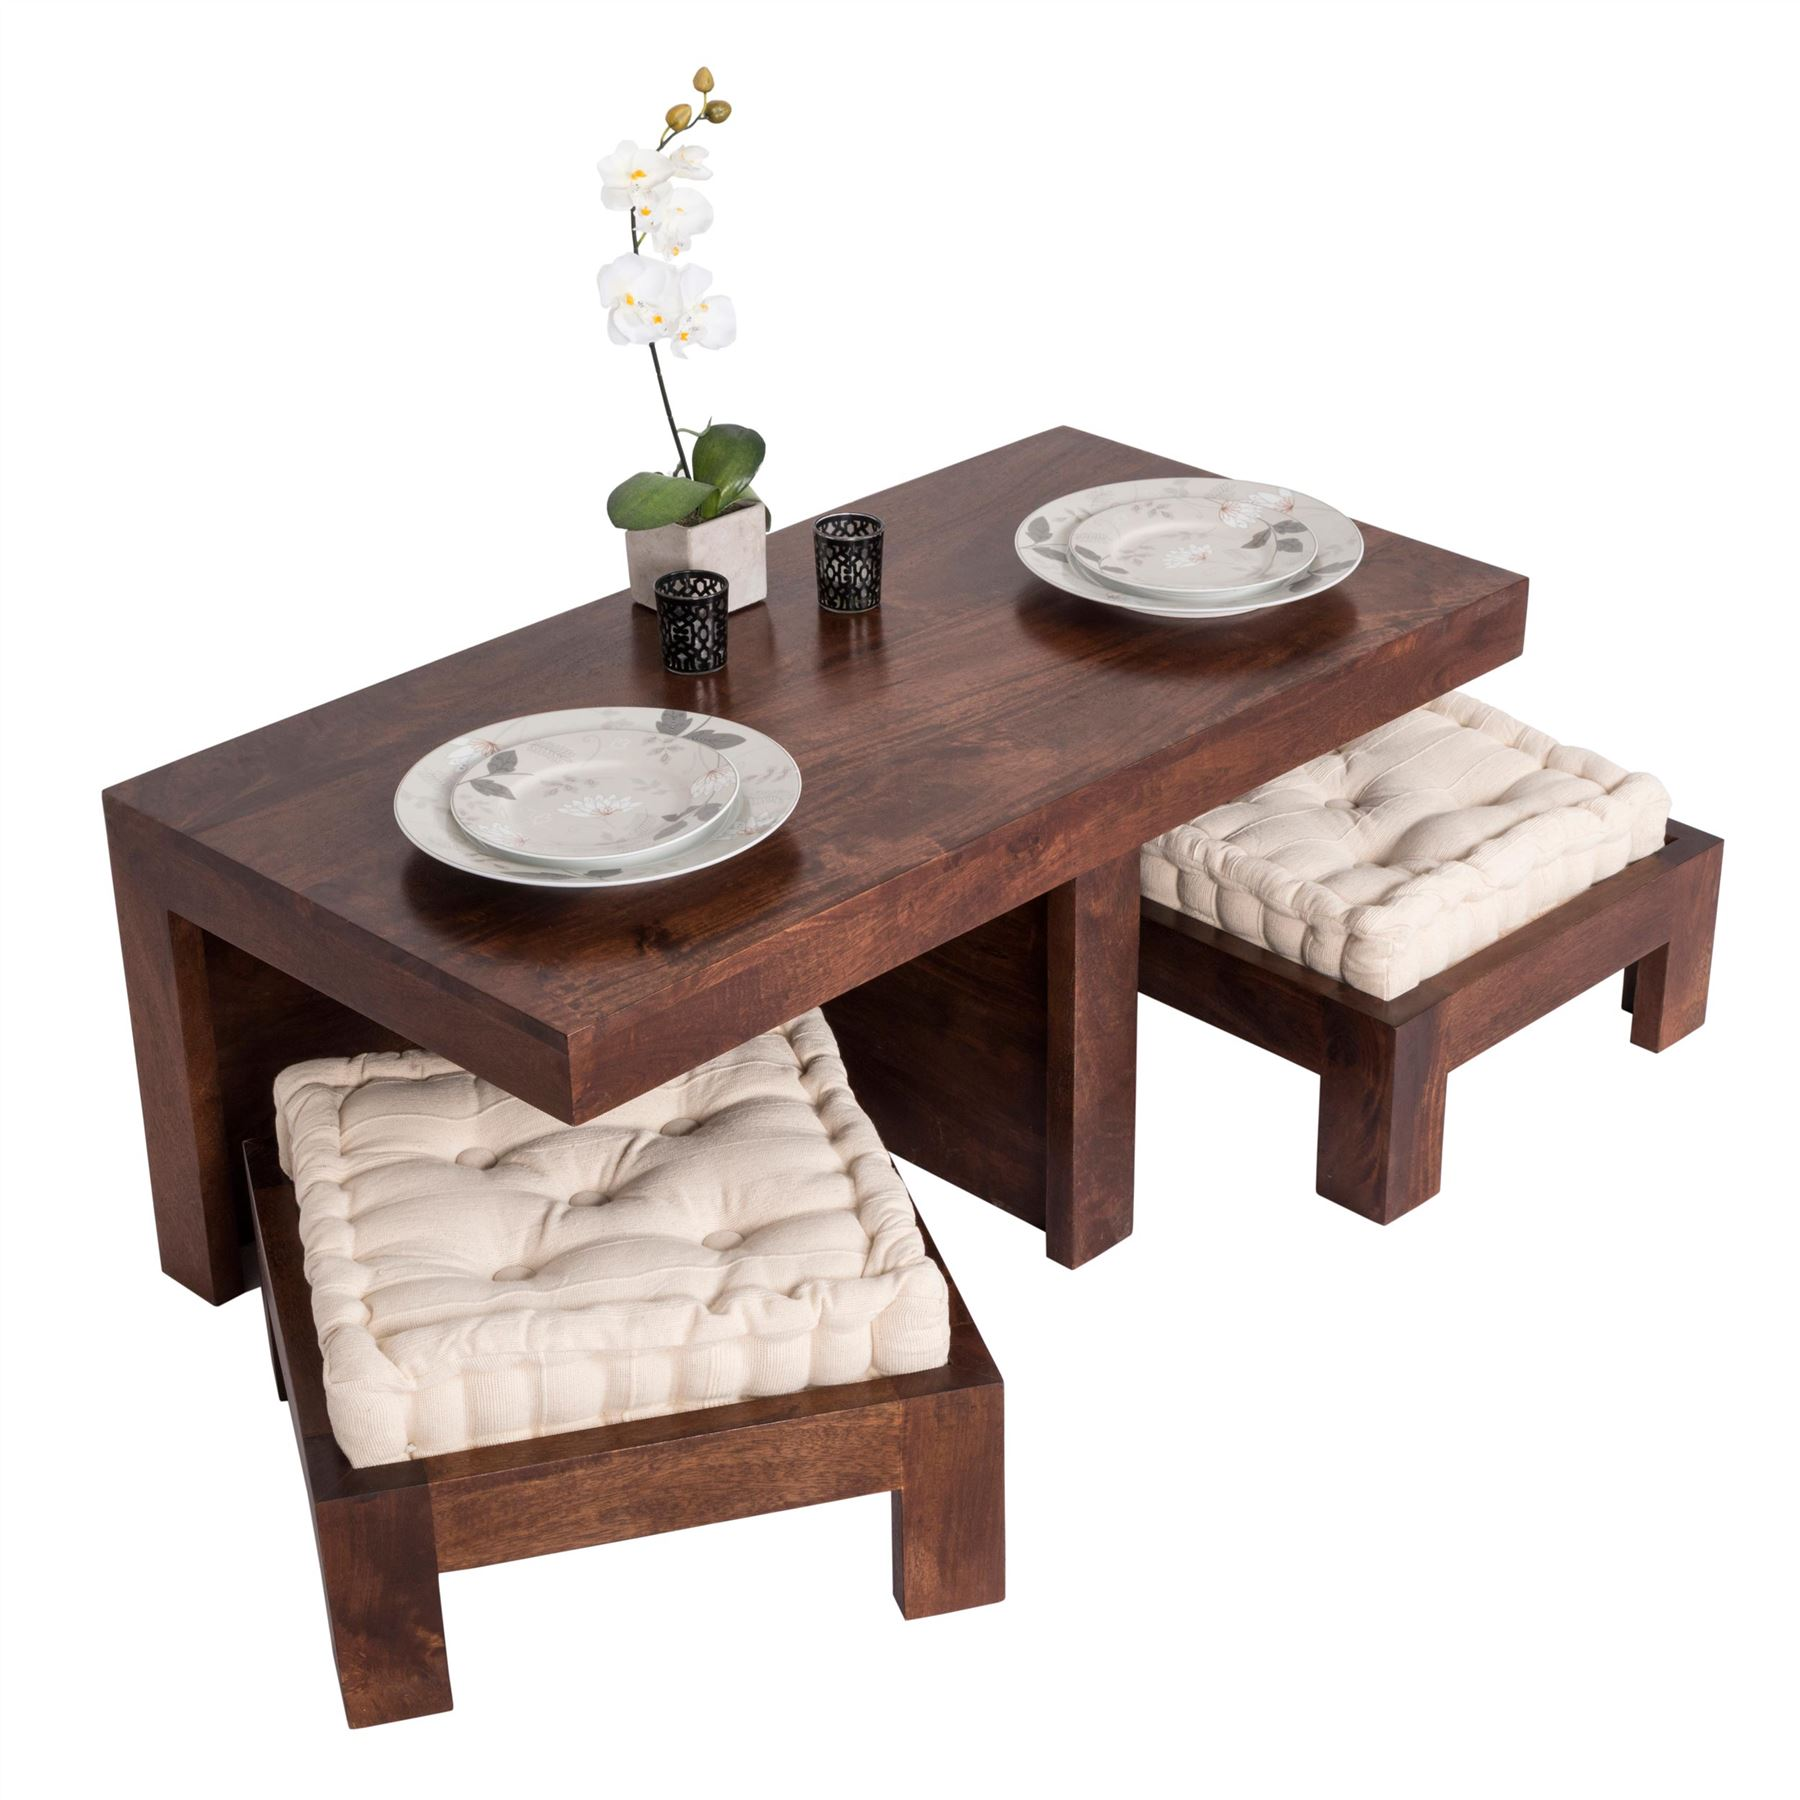 Dark shade dakota compact coffee table set with two stools for Coffee table with stools underneath